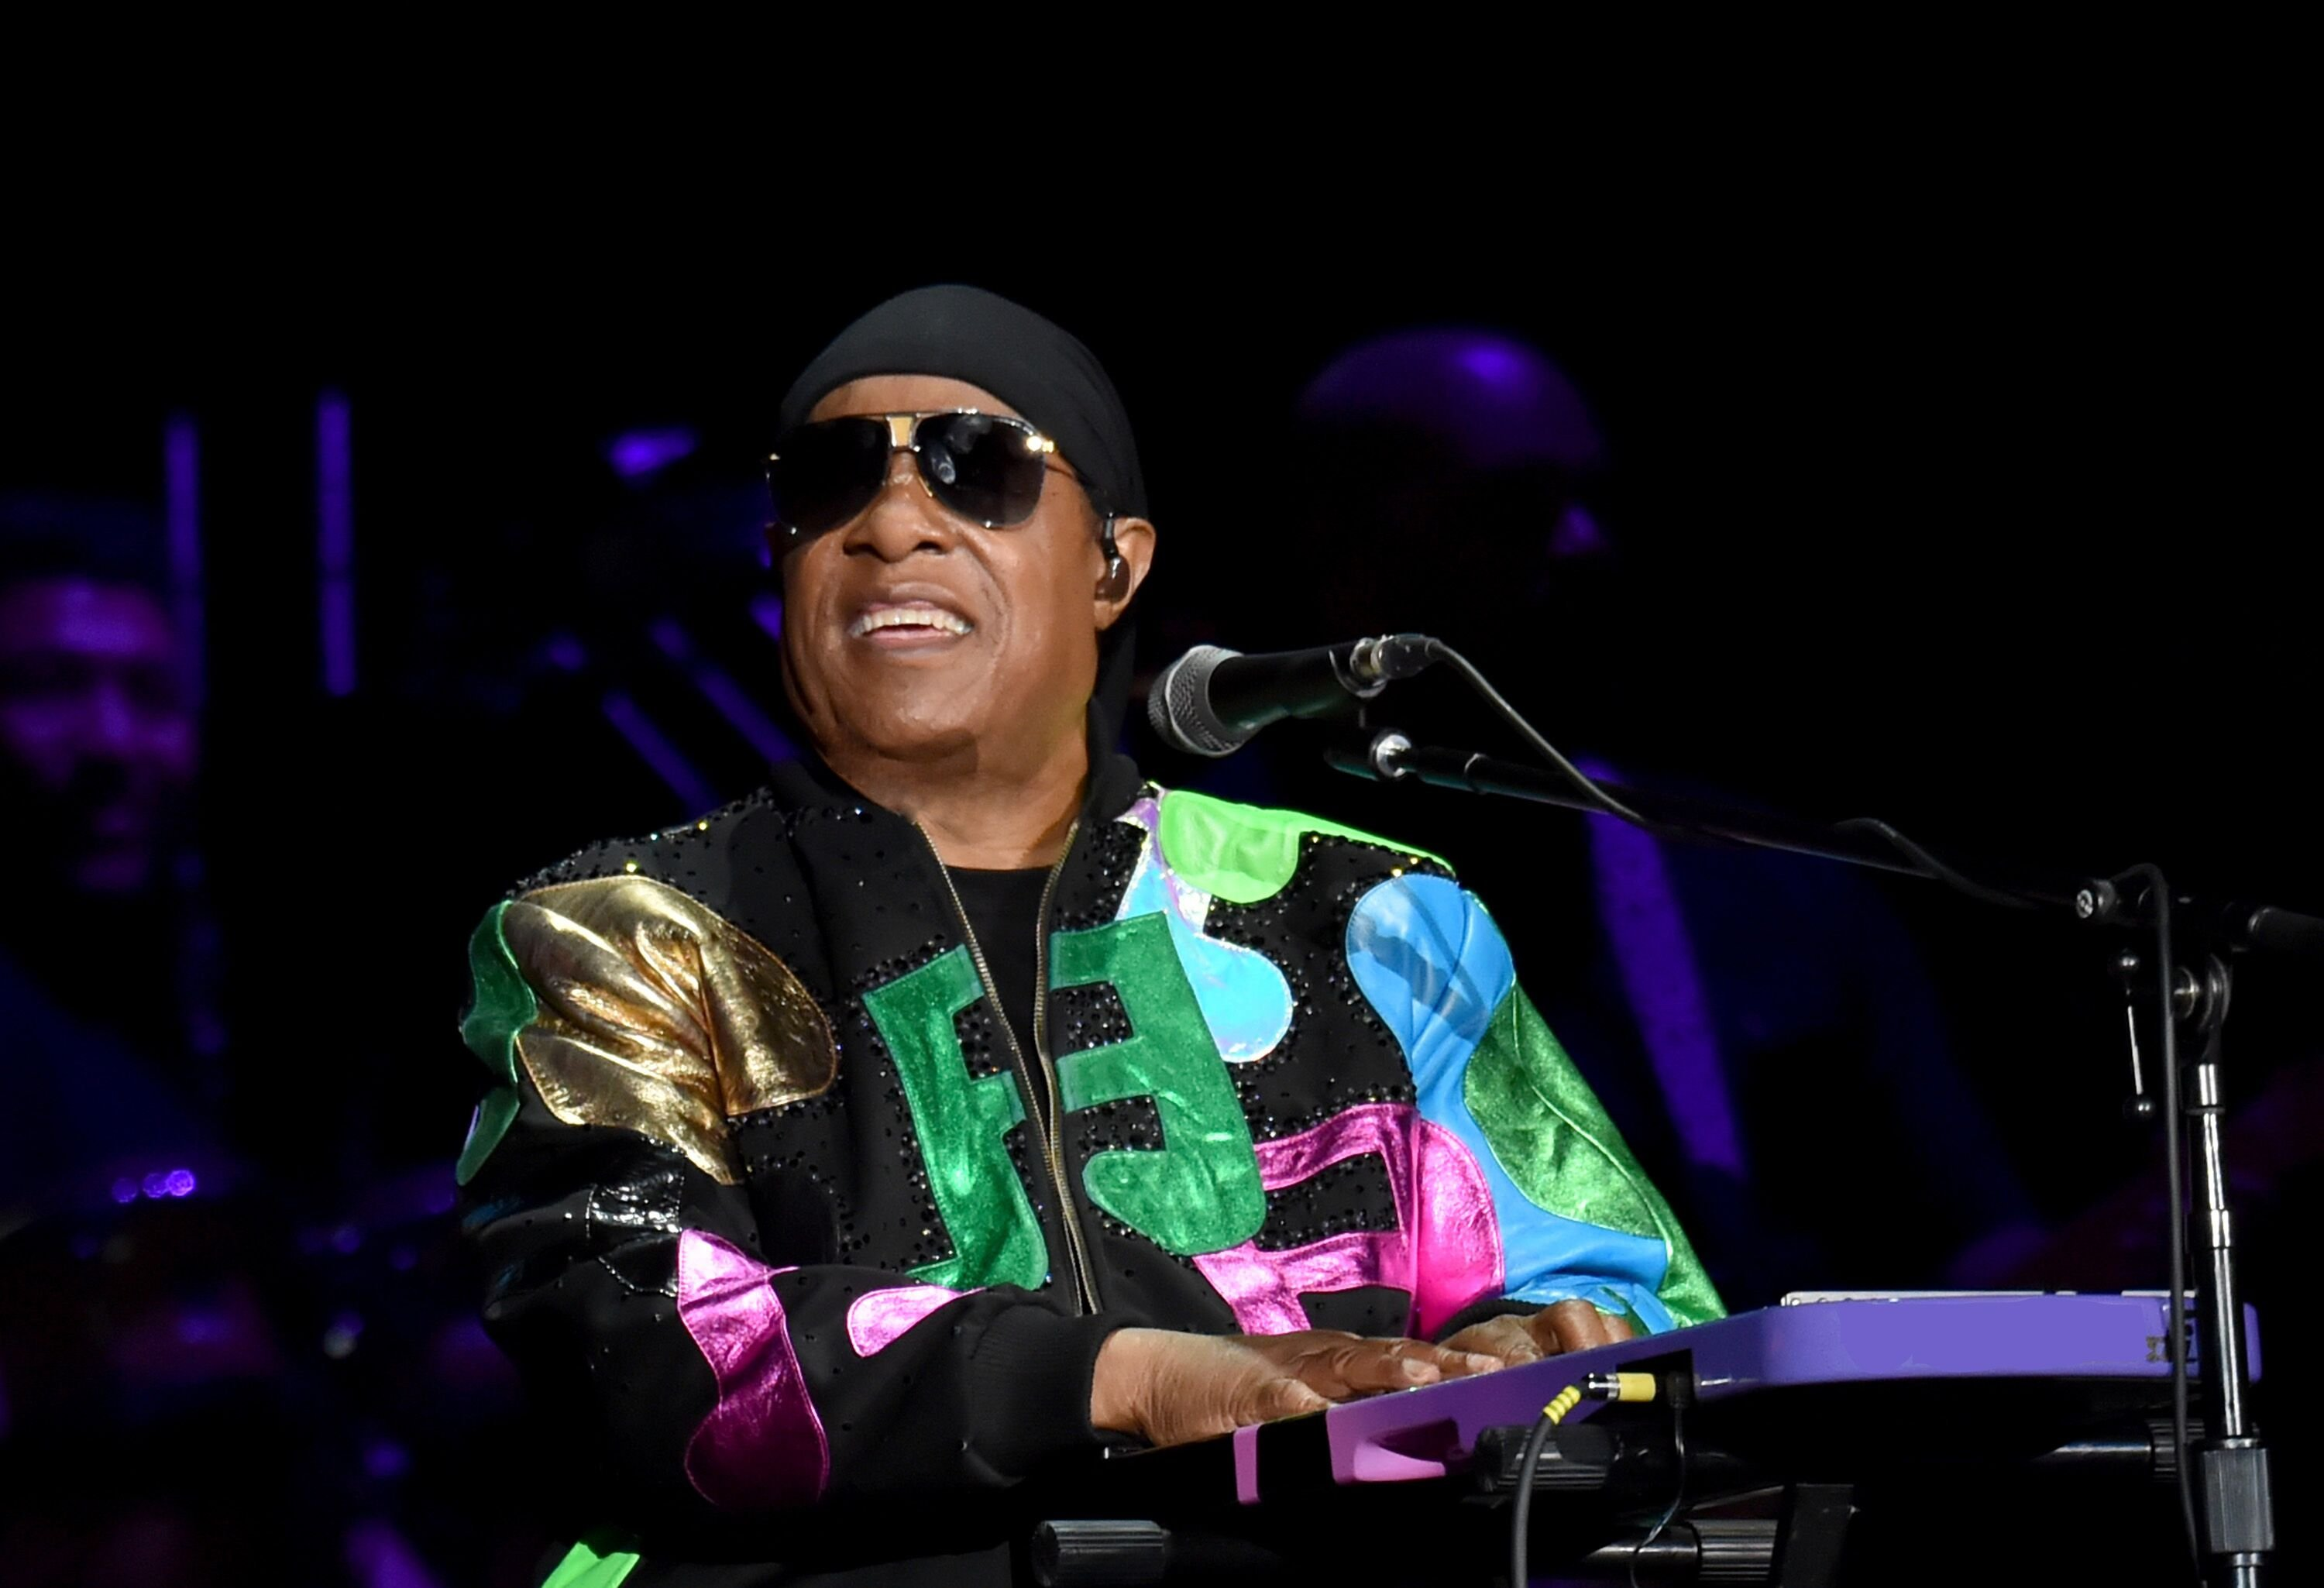 Stevie Wonder performs on Day 2 of Barclaycard Presents British Summer Time Hyde Park on July 6, 2019 in London, England. | Photo: Getty Images